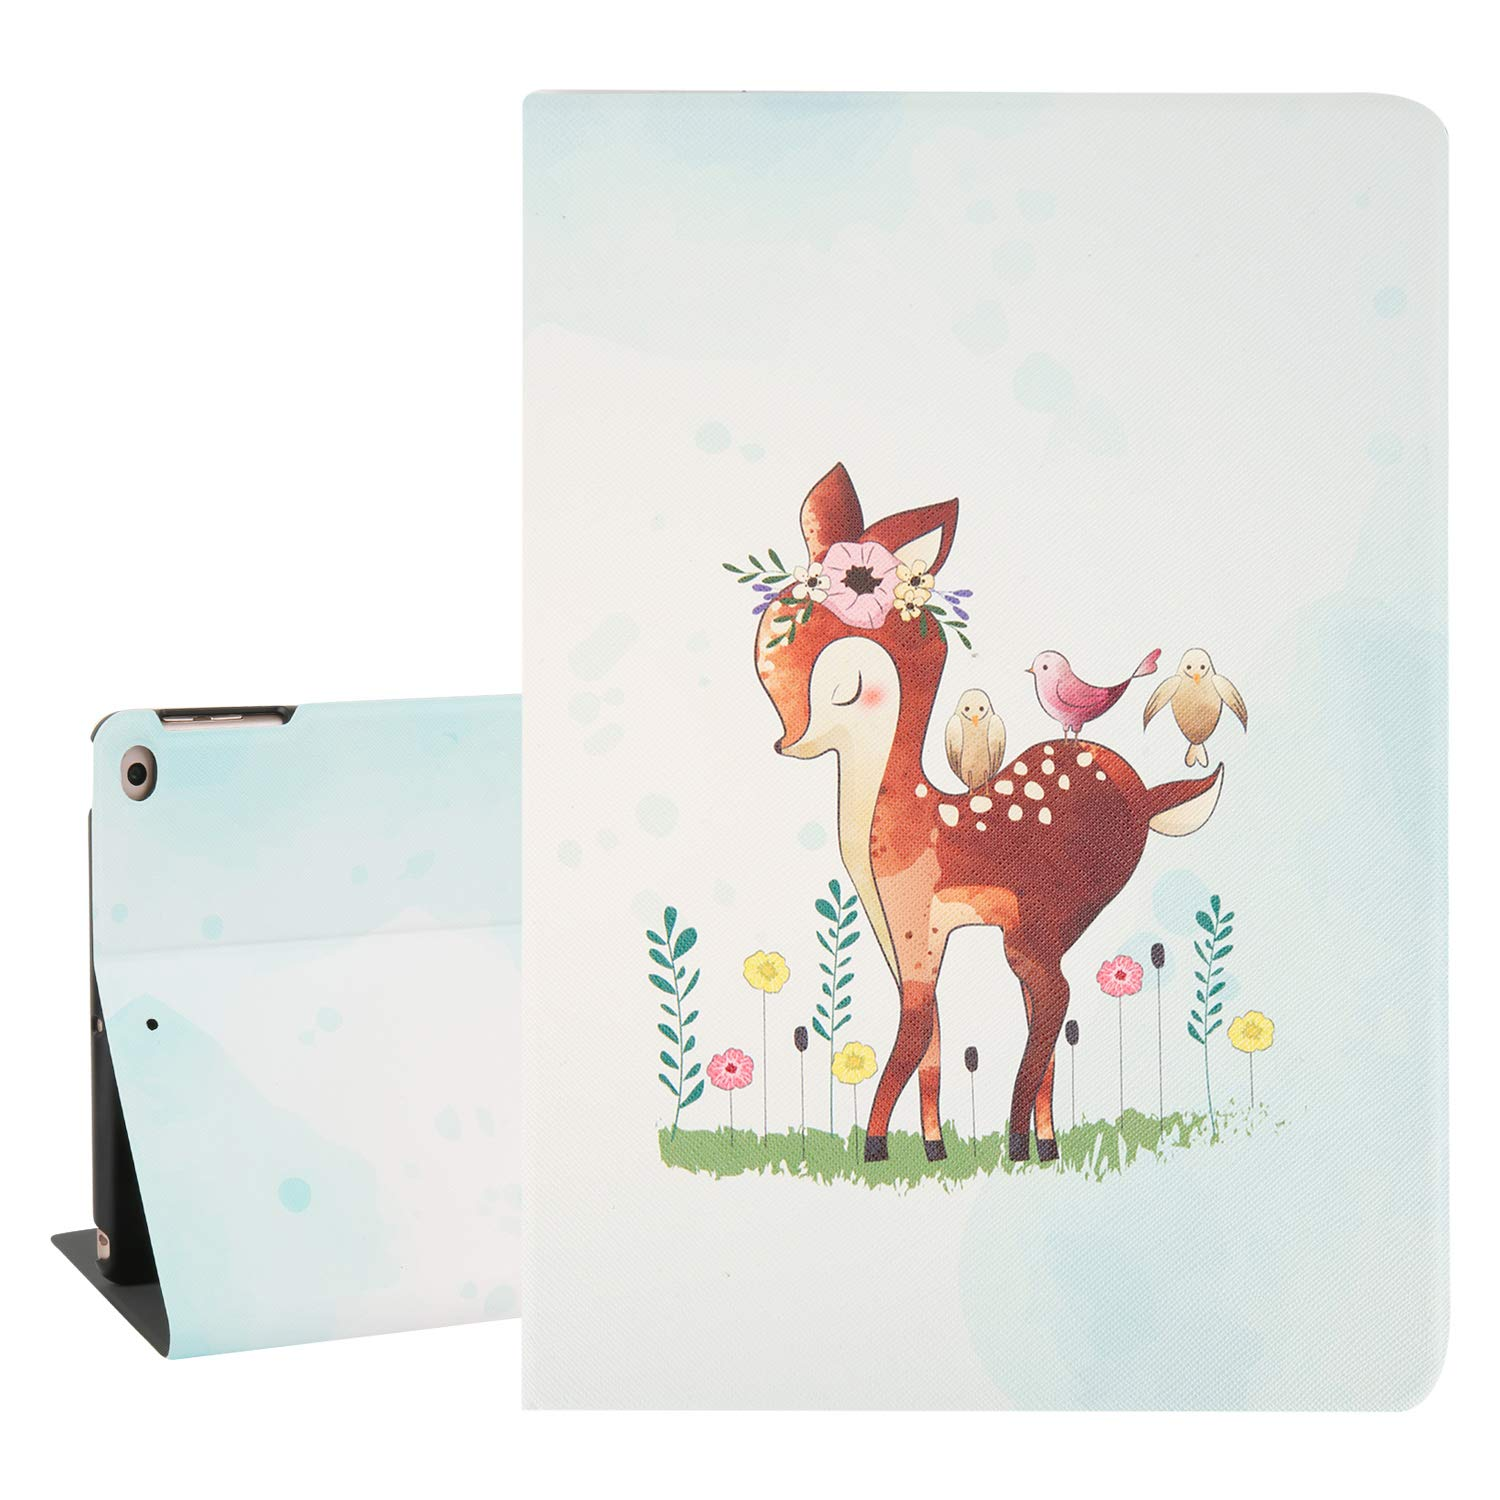 """Hepix Cute iPad 9.7 Case for Kids Christmas Deer iPad Air 2 Cases, iPad 6th / 5th Gen Case Lightweight Protective PU Leather Multi-Angle Stand with Auto Sleep Wake for iPad 9.7"""" 2018/2017"""